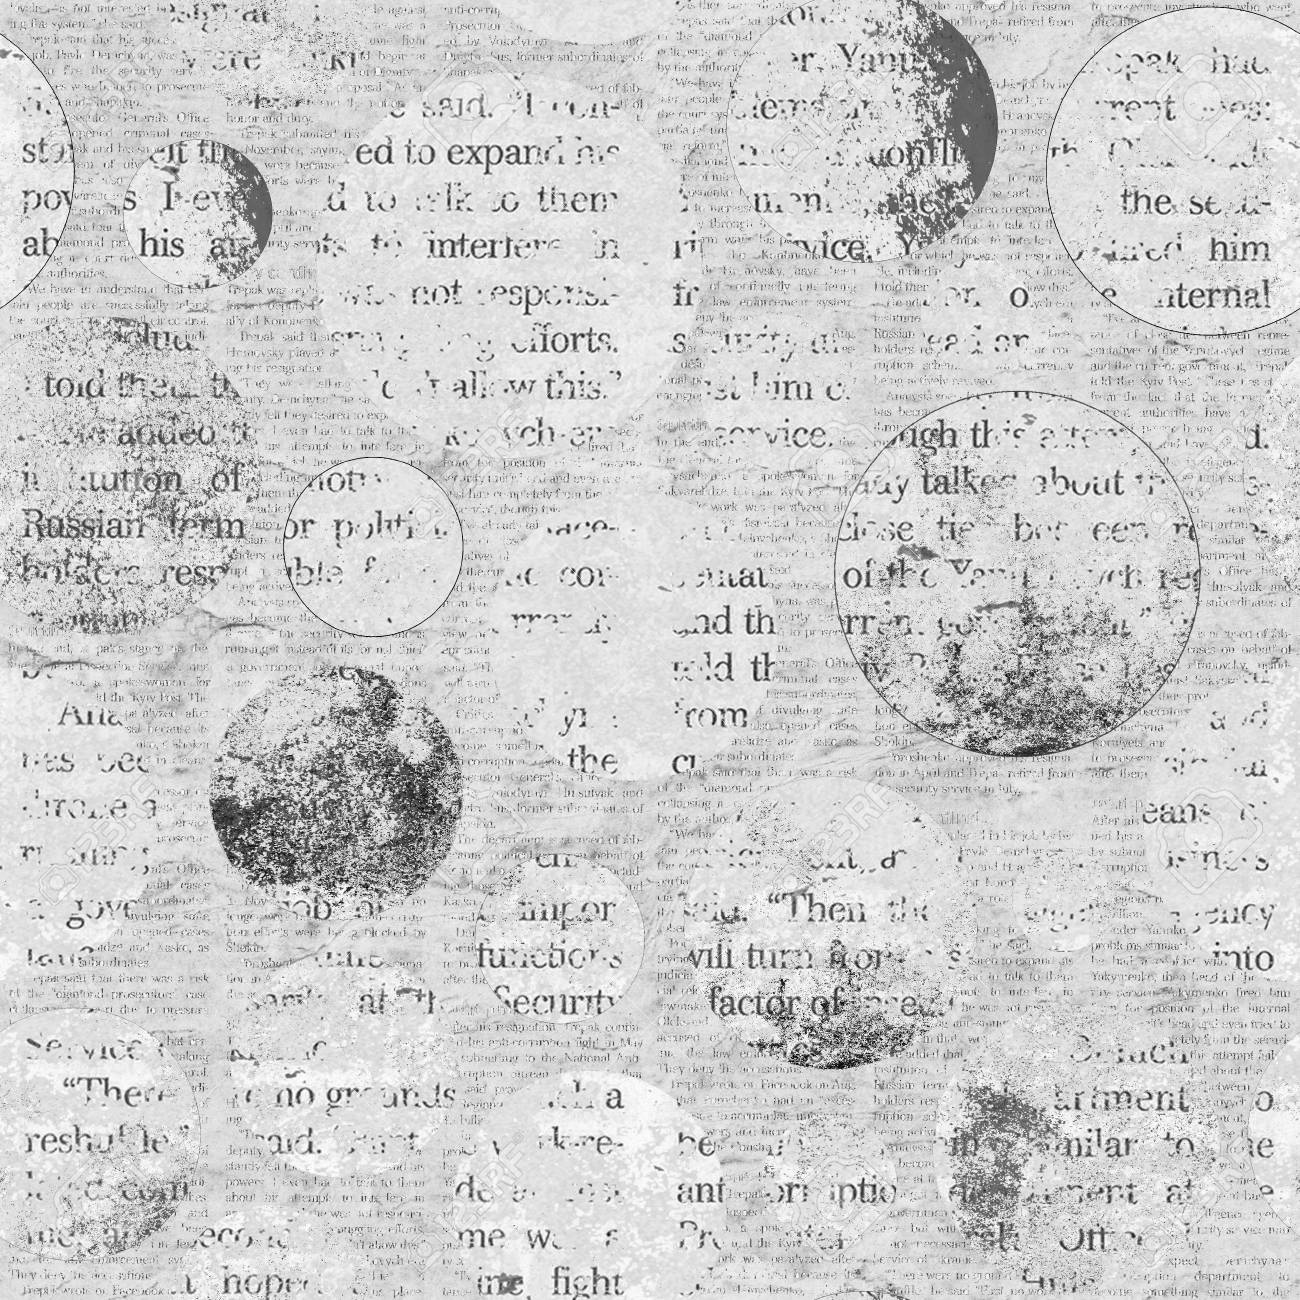 newspaper texture. news collage clippings with mixed unreadable